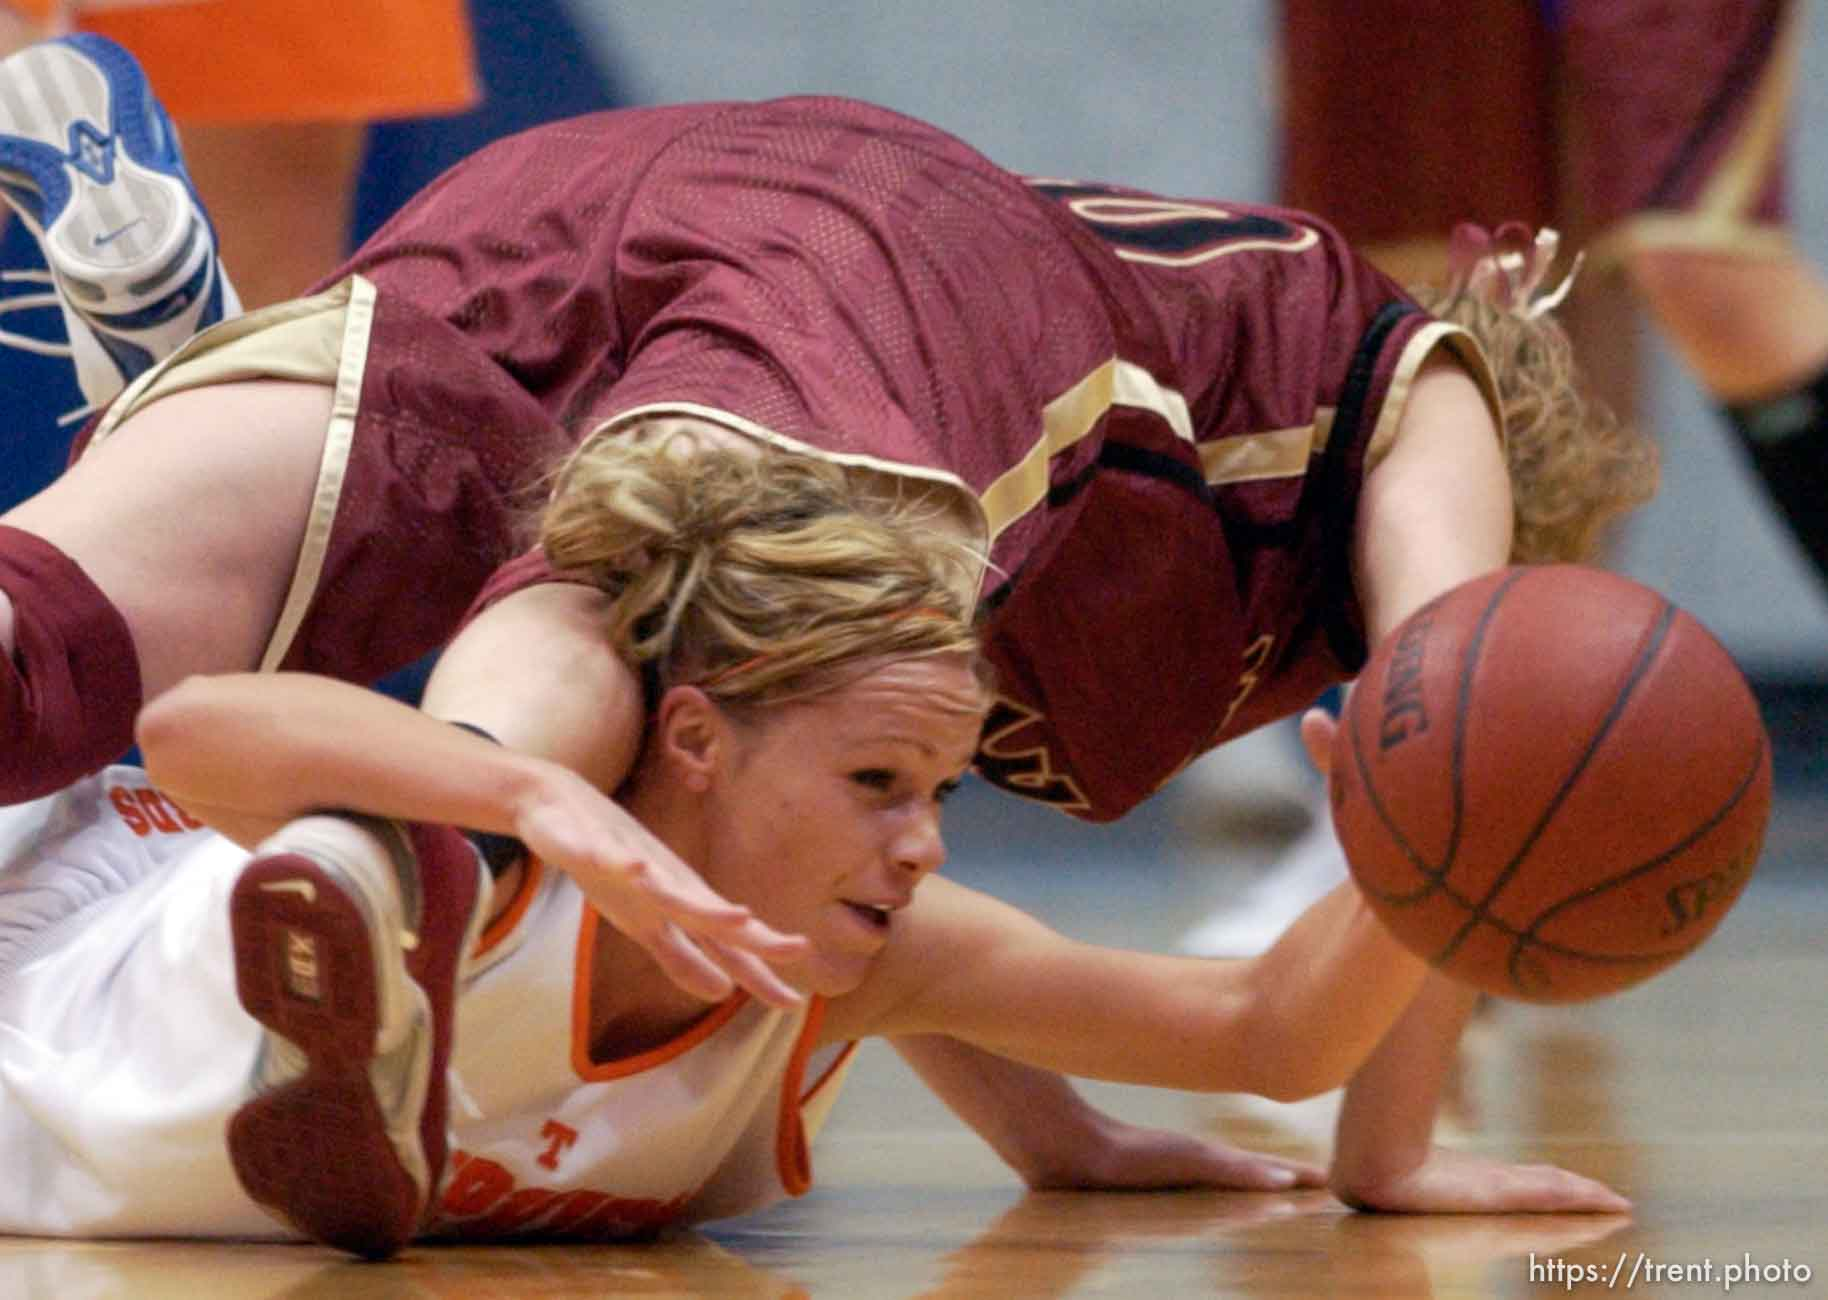 Timpview's Jessica Harmon shows the determination that brought her team to the state championship game as she dives for a loose ball underneath Mountain View's Mallary Gillespie. Utah's 4A state championship girls basketball game.